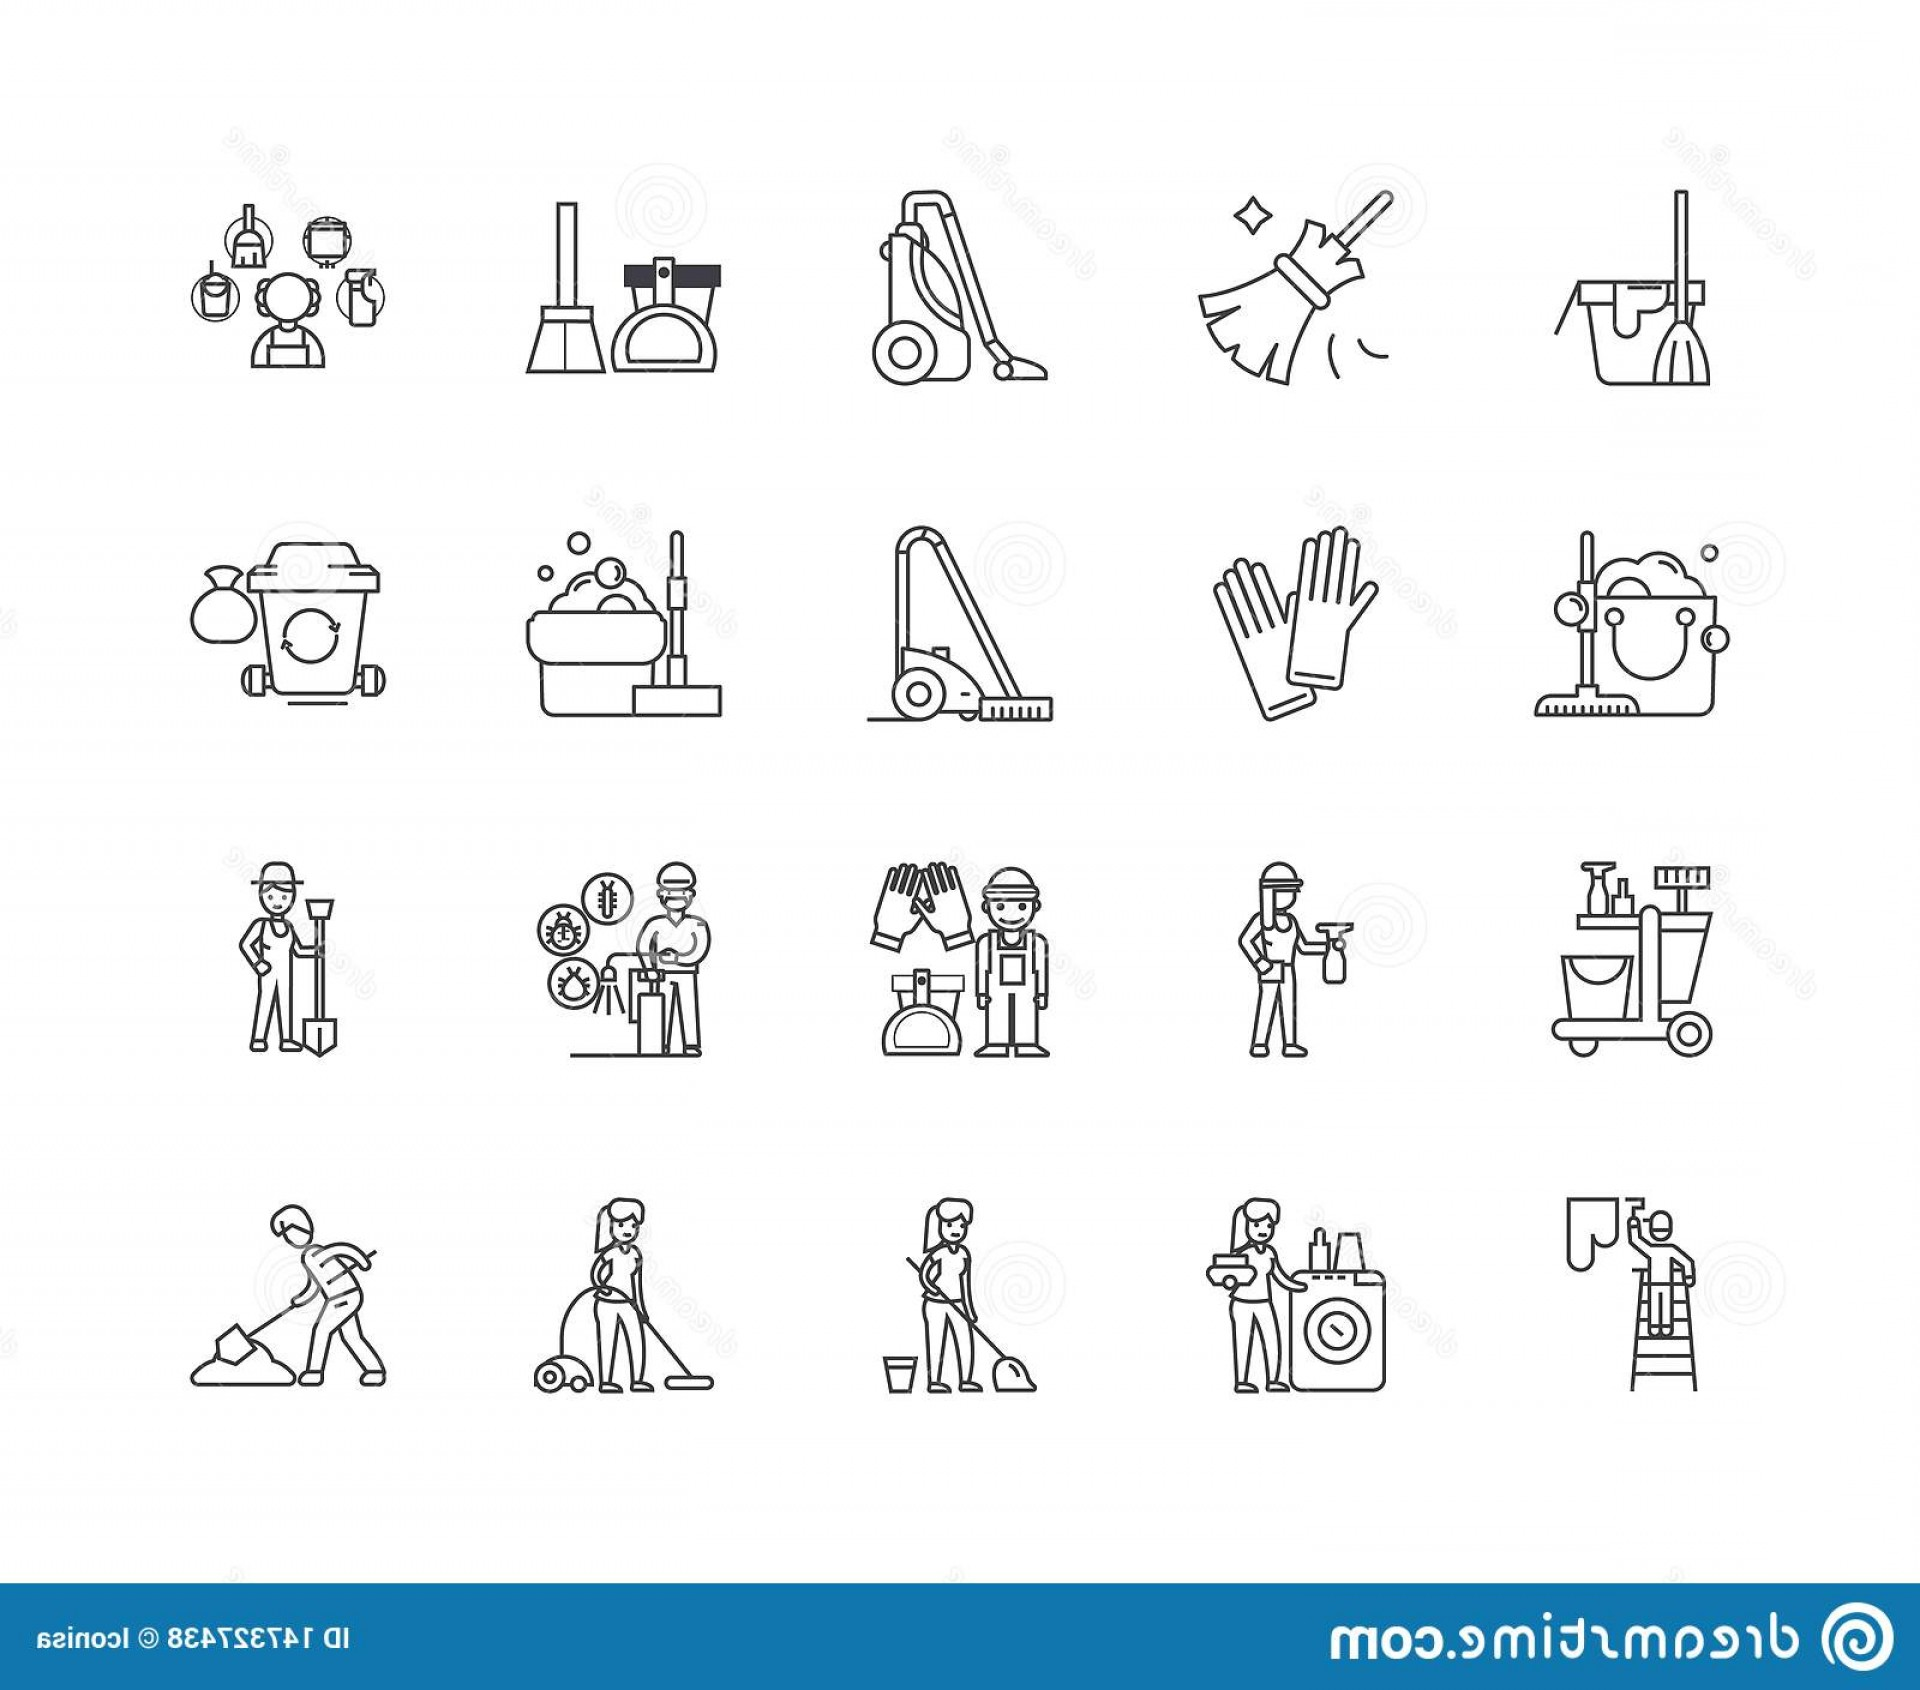 Janitorial Vector: Janitorial Service Line Icons Signs Vector Set Outline Illustration Concept Linear Image